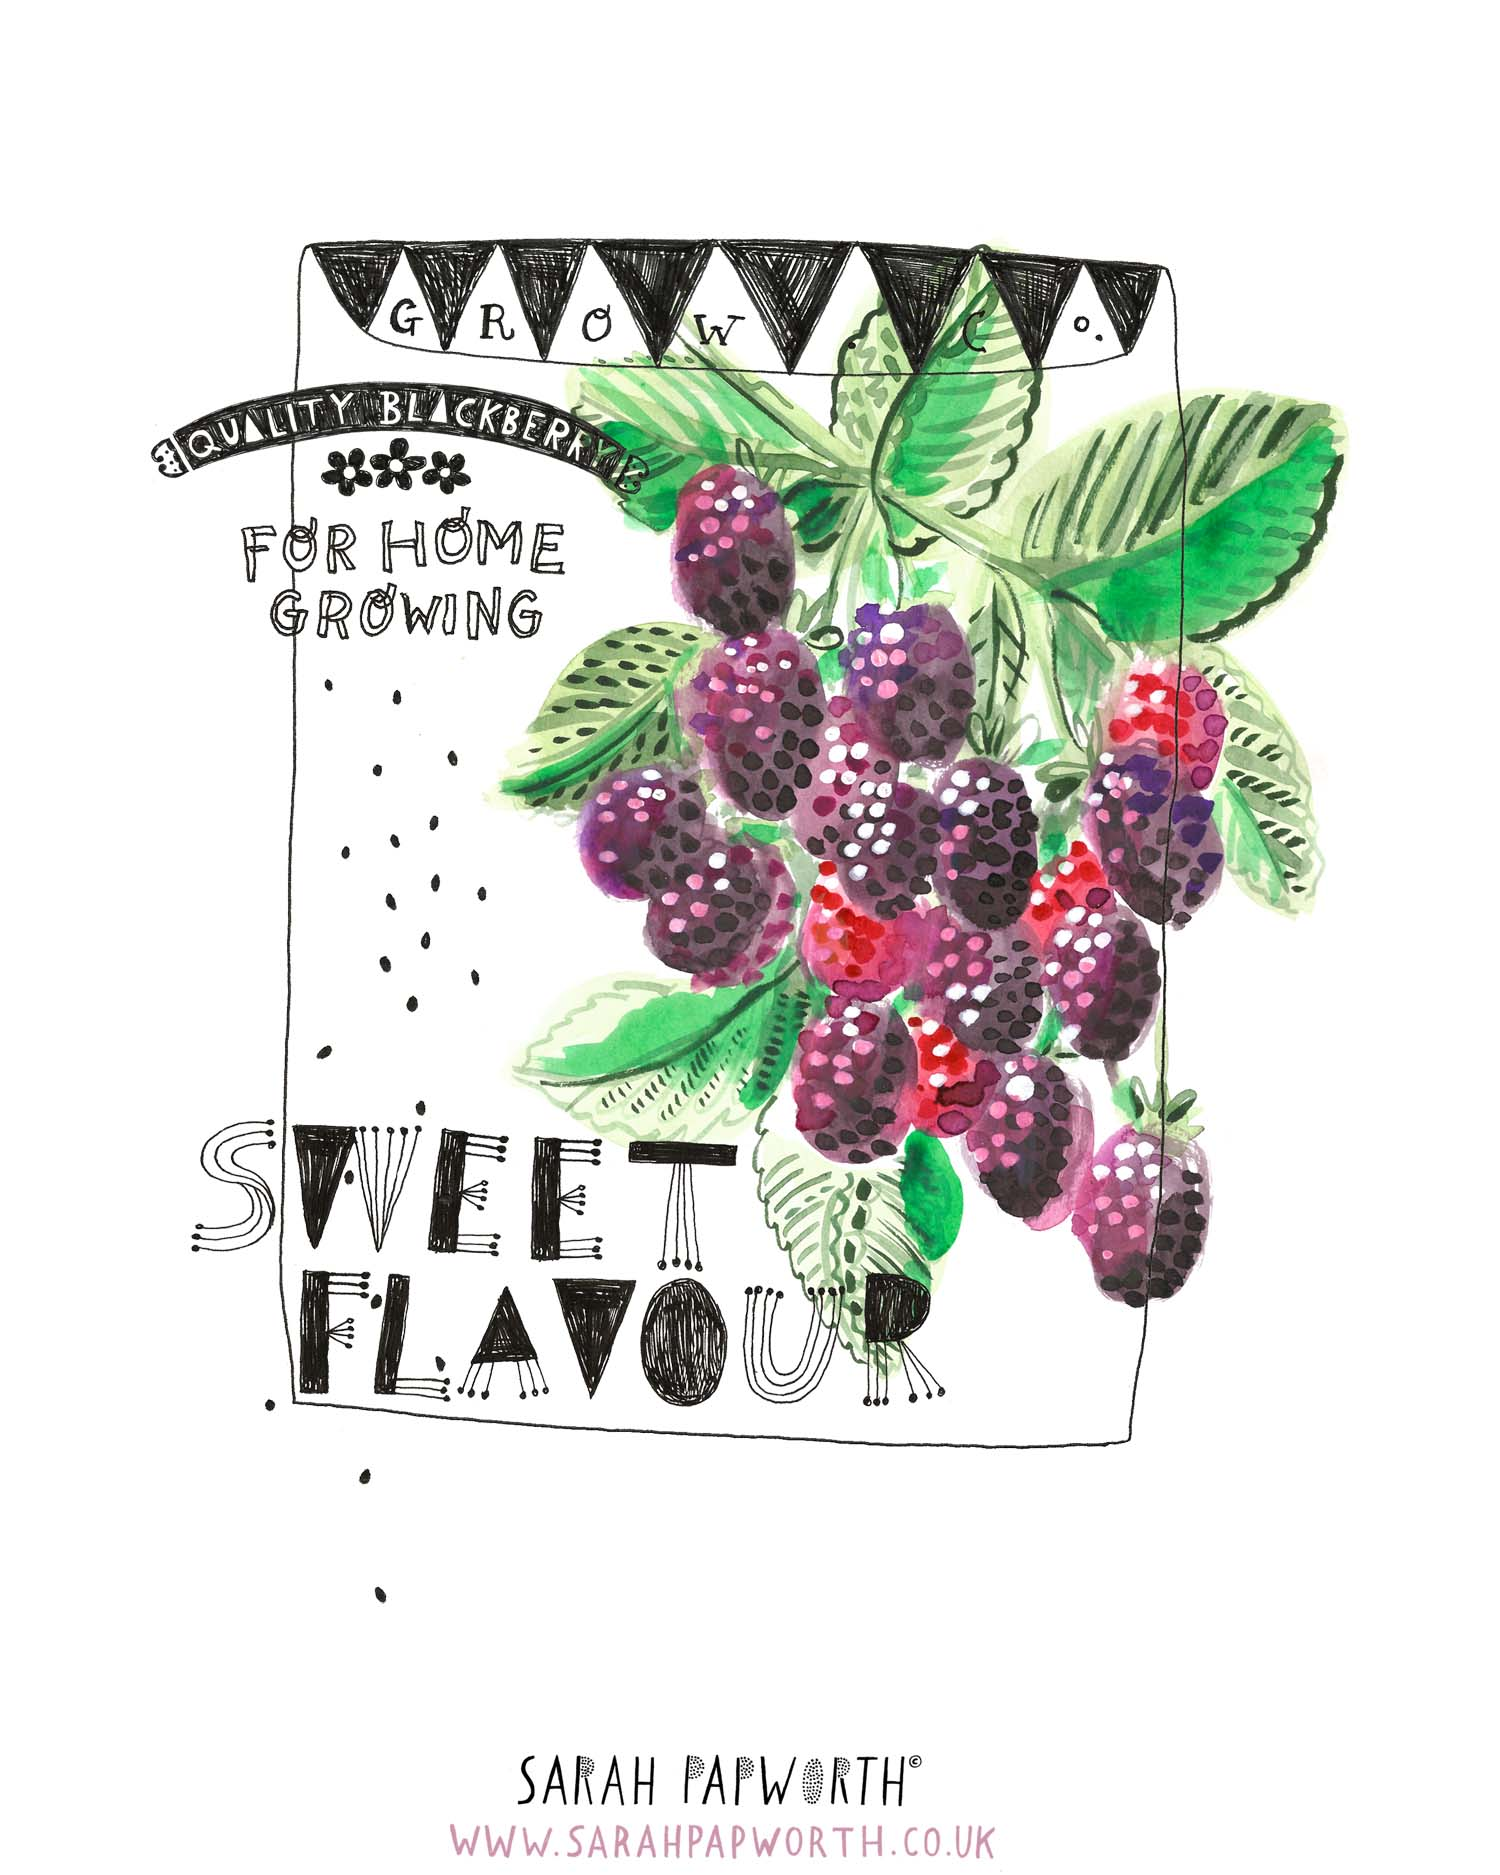 blackberry illustration food watercolour editorial by sarah papworth.jpg